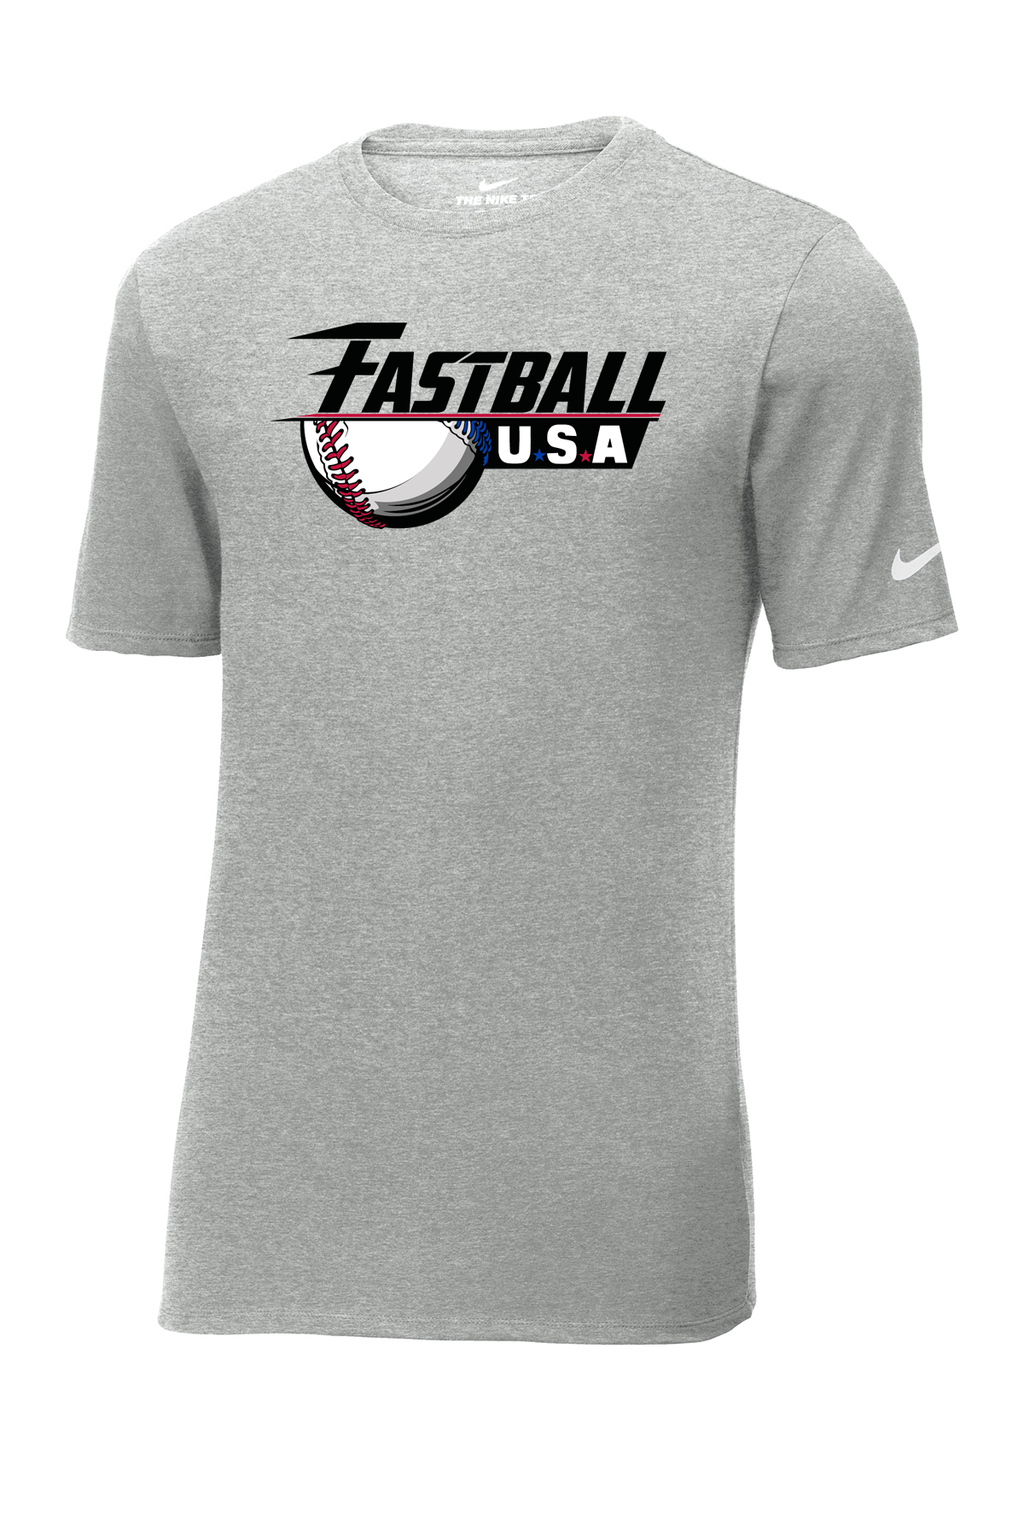 Fastball USA Academy Baseball Nike Core Cotton Tee